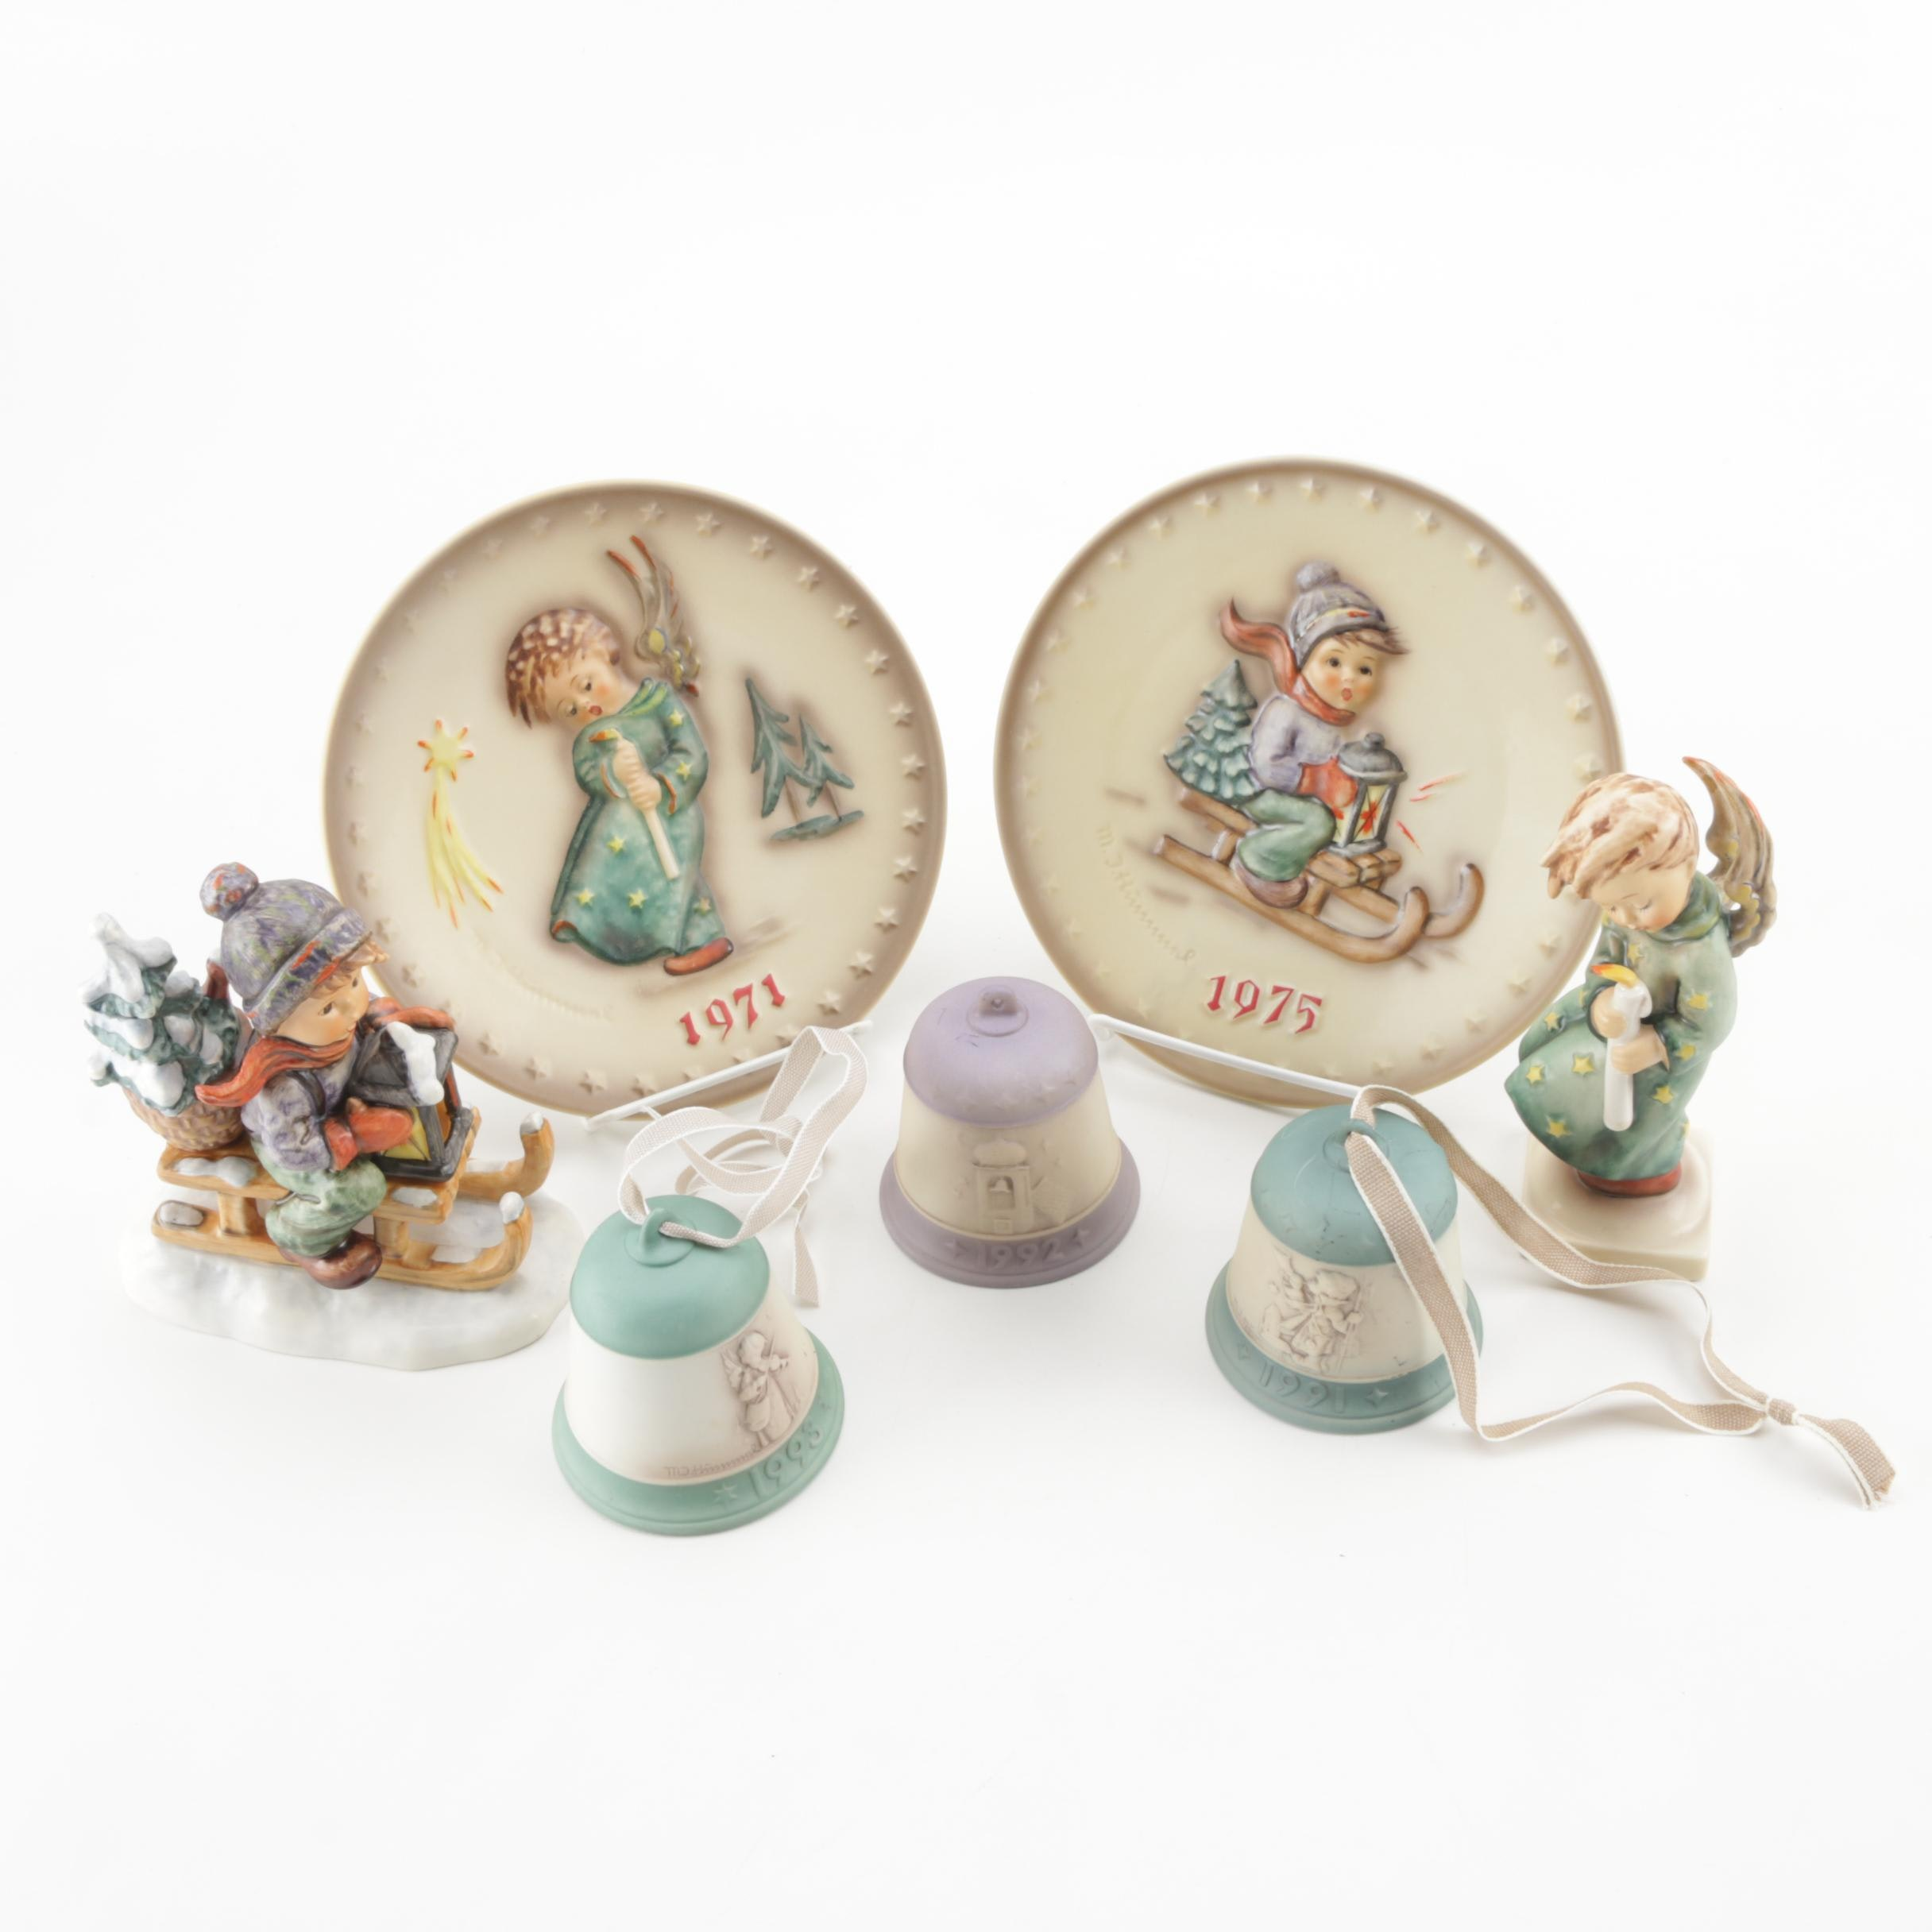 Hummel Annual Plates, Figurines and Bells